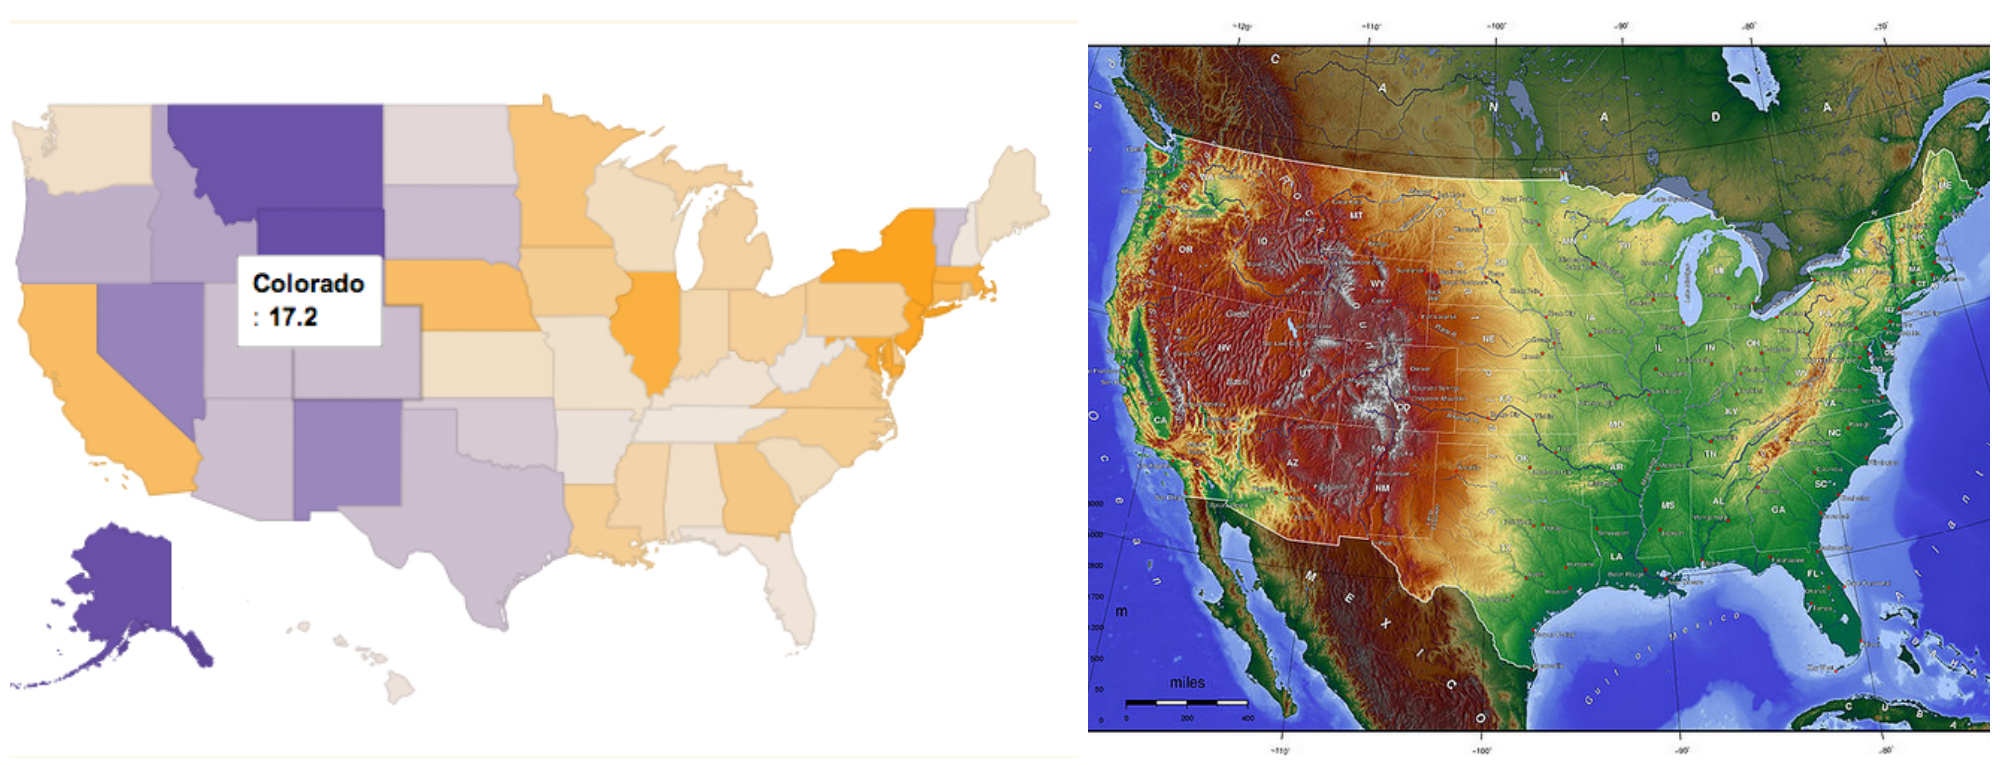 States Elevation Map United States Physical Map Wall Mural From - Us states by elevation